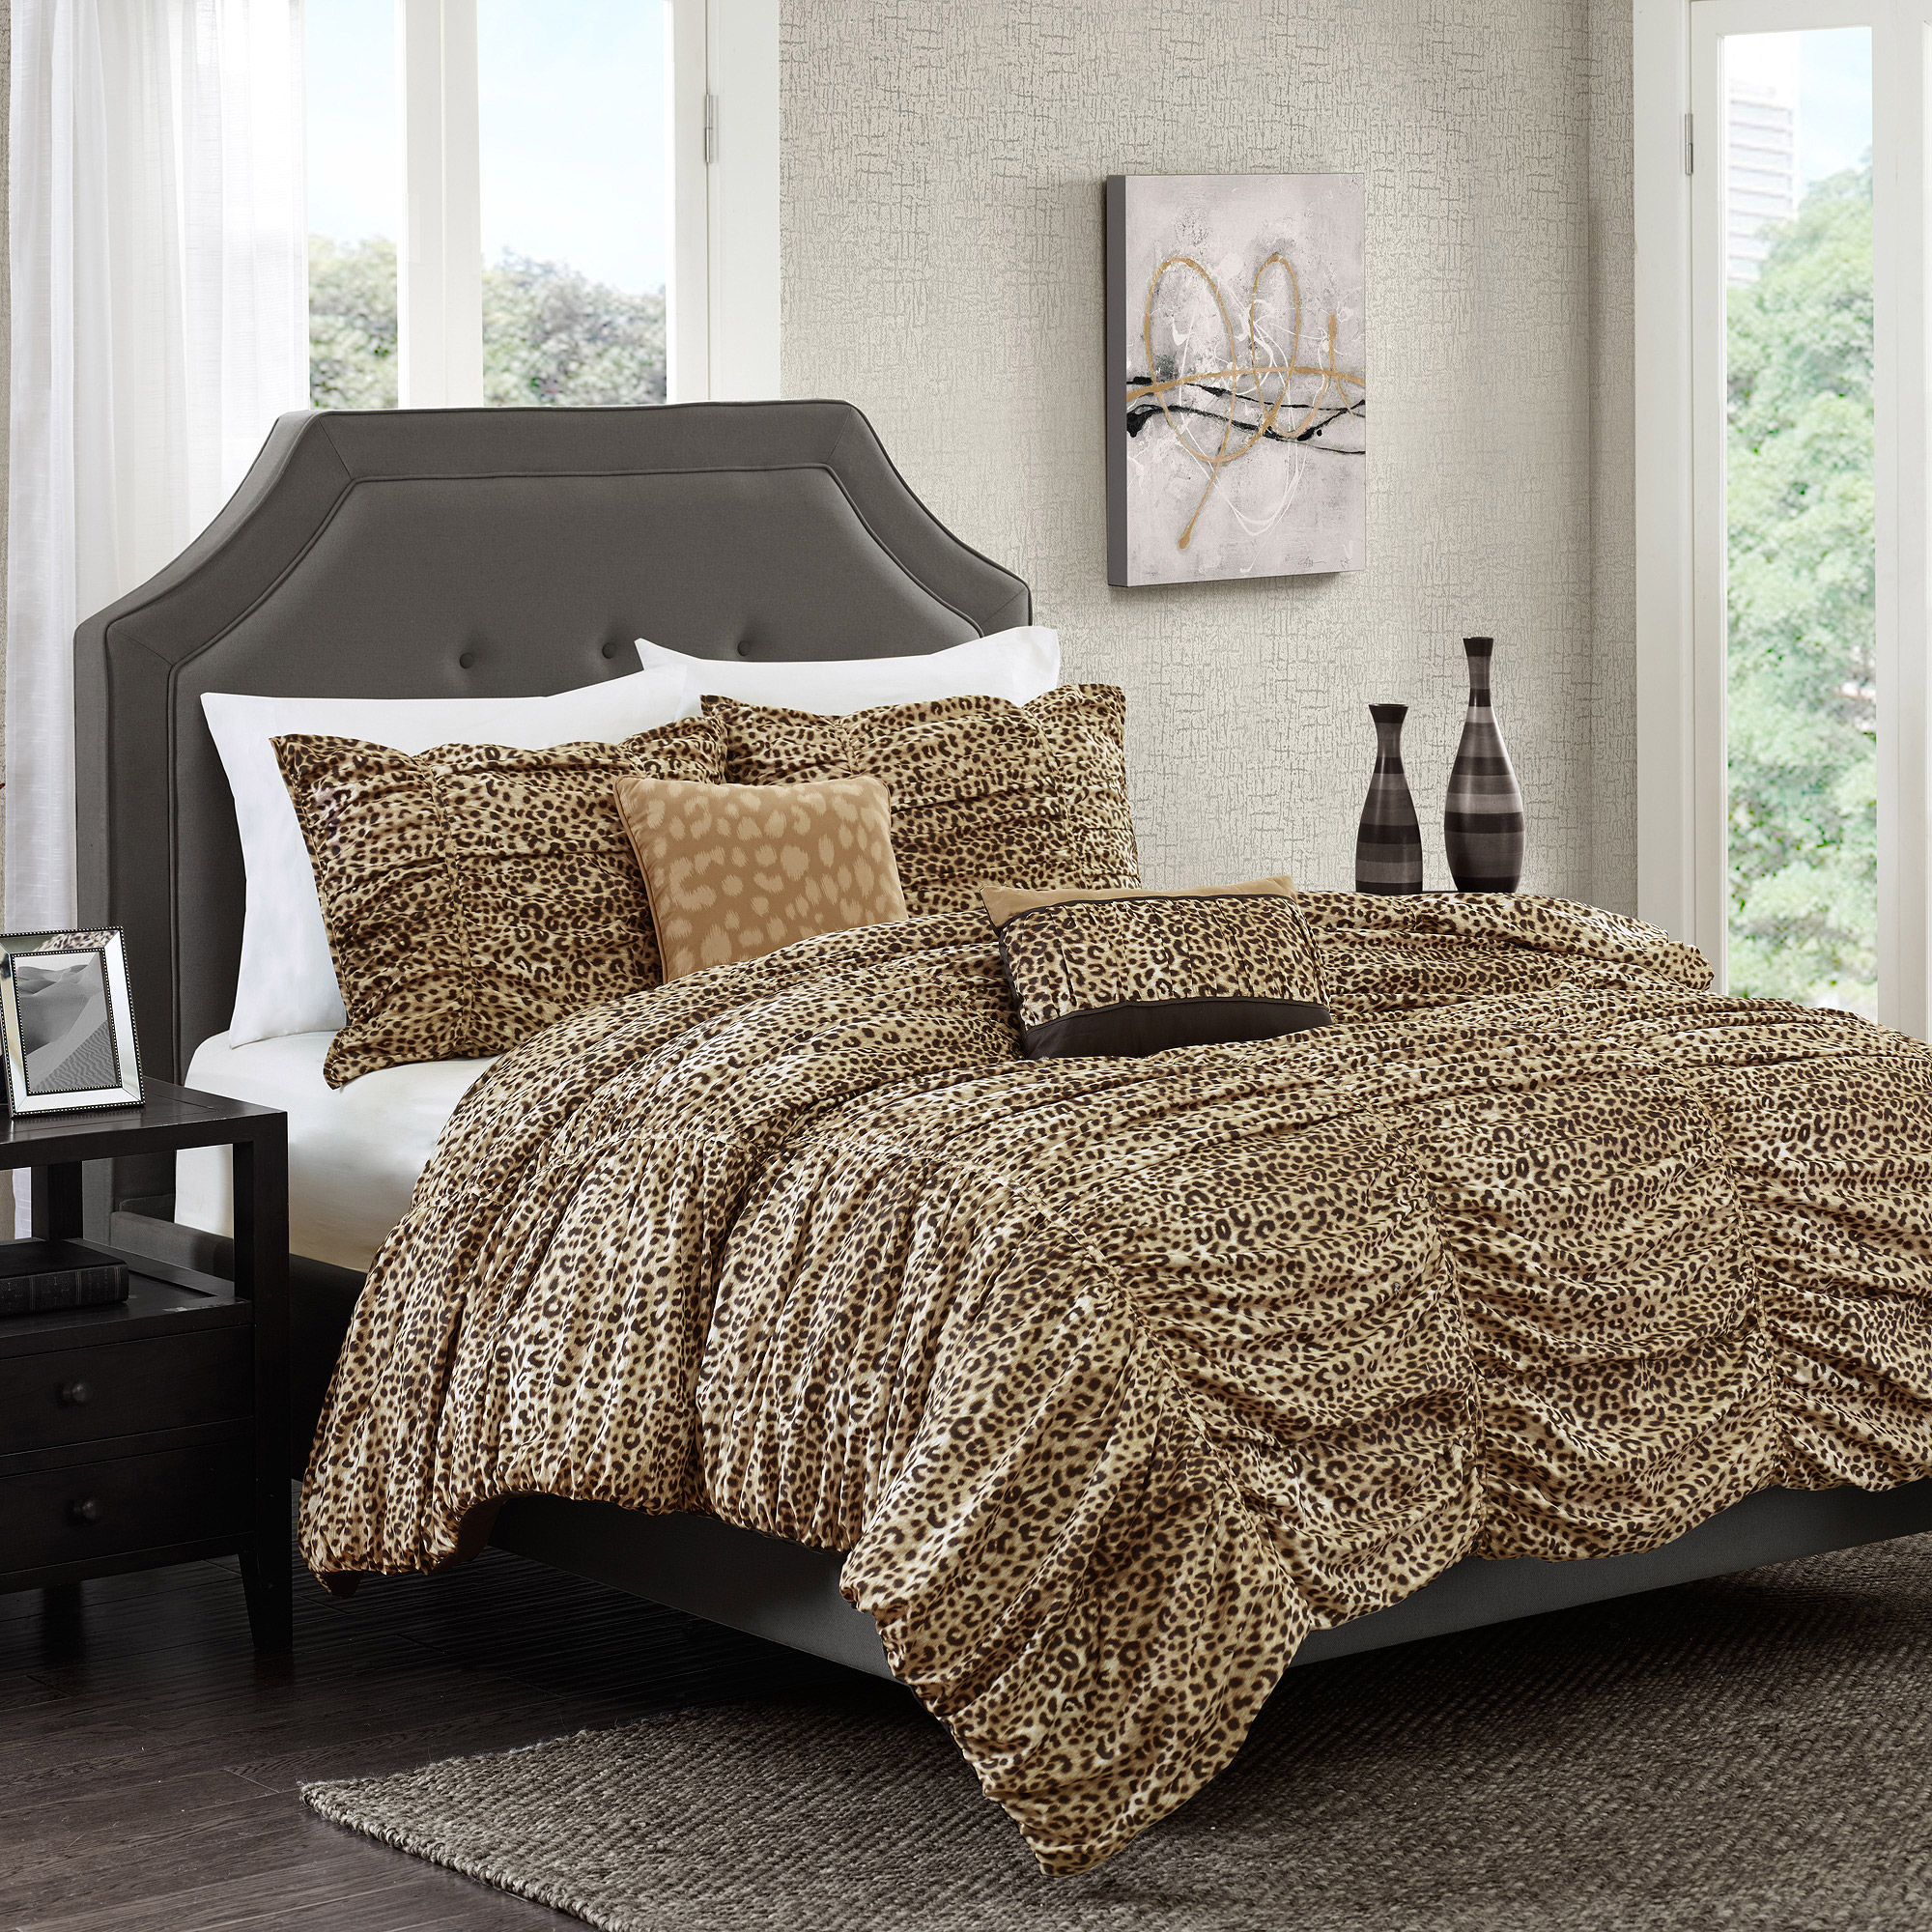 Better homes and gardens zahara 5 piece bedding comforter set walmart com